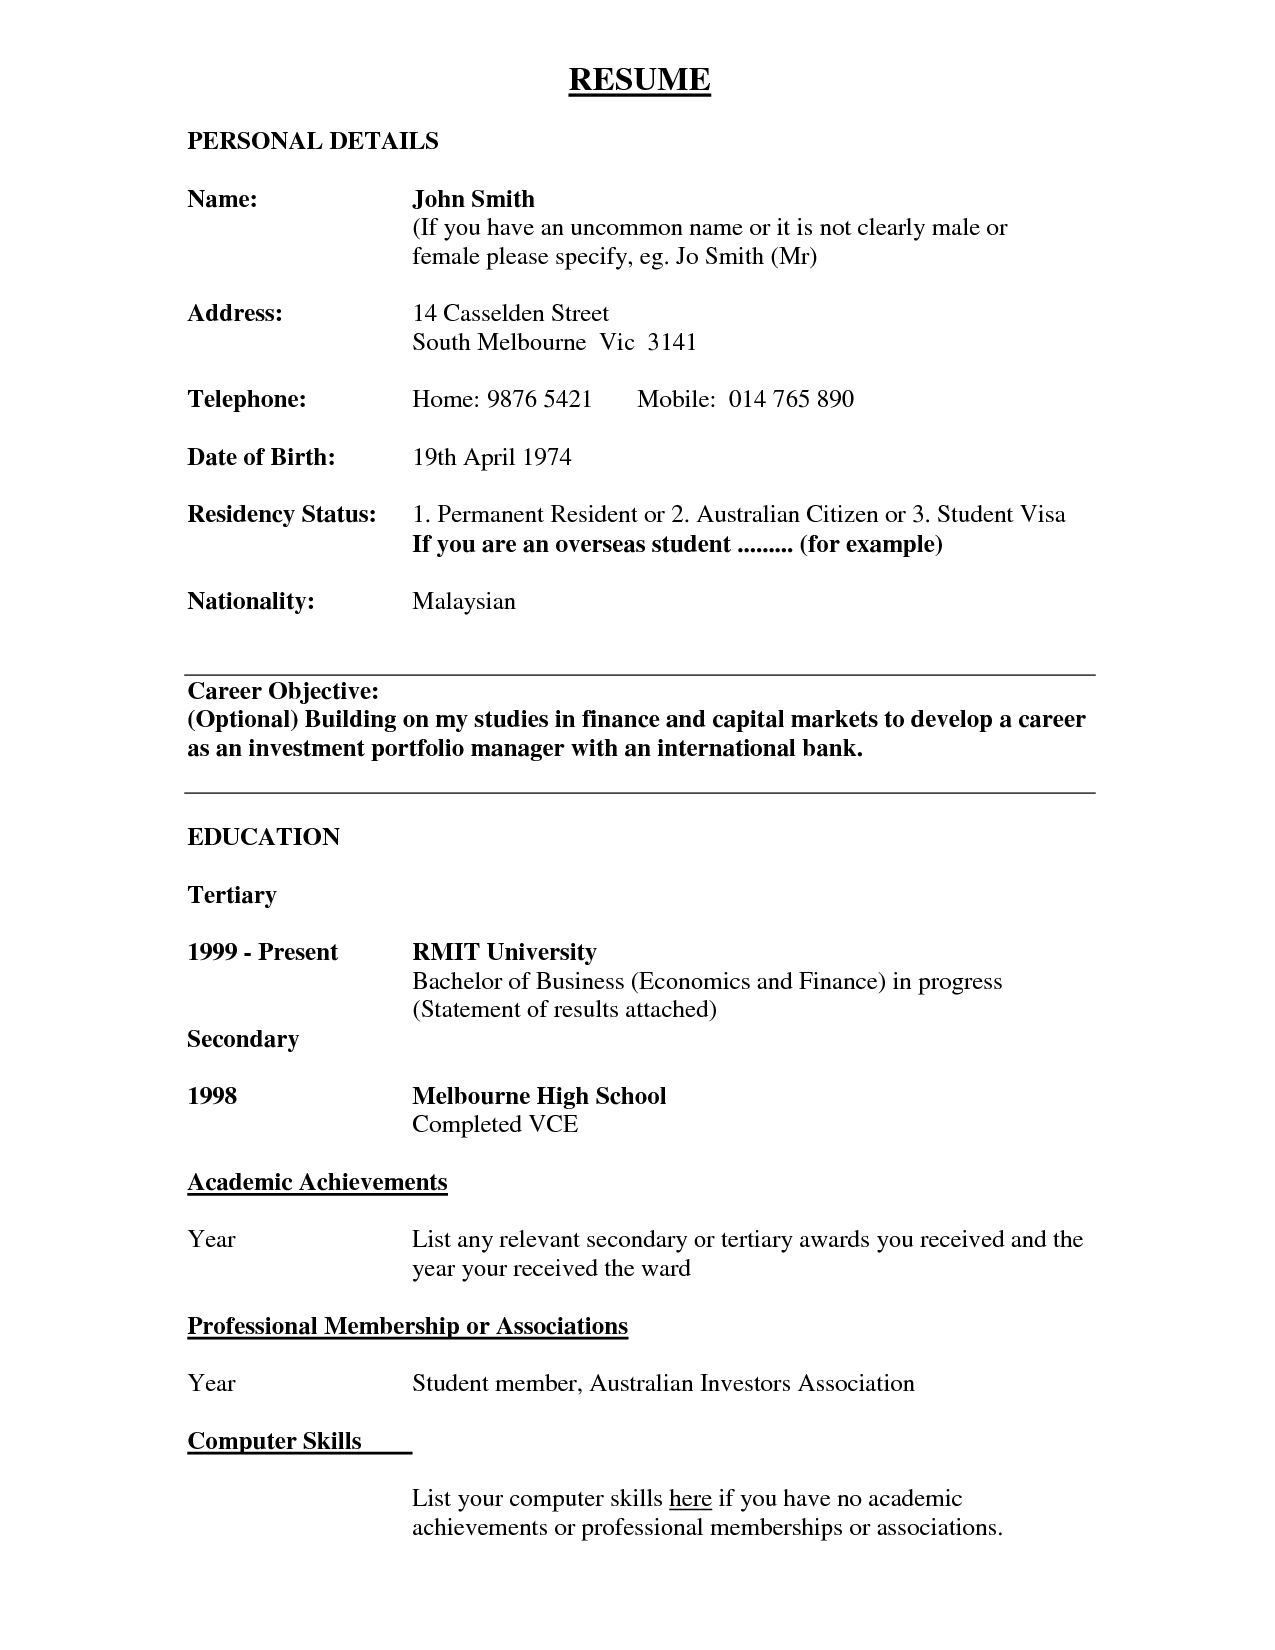 Banking Resume With No Experience Http Www Resumecareer Info Banking Resume With No Experience 12 Job Resume Examples How To Make Resume Bank Teller Resume